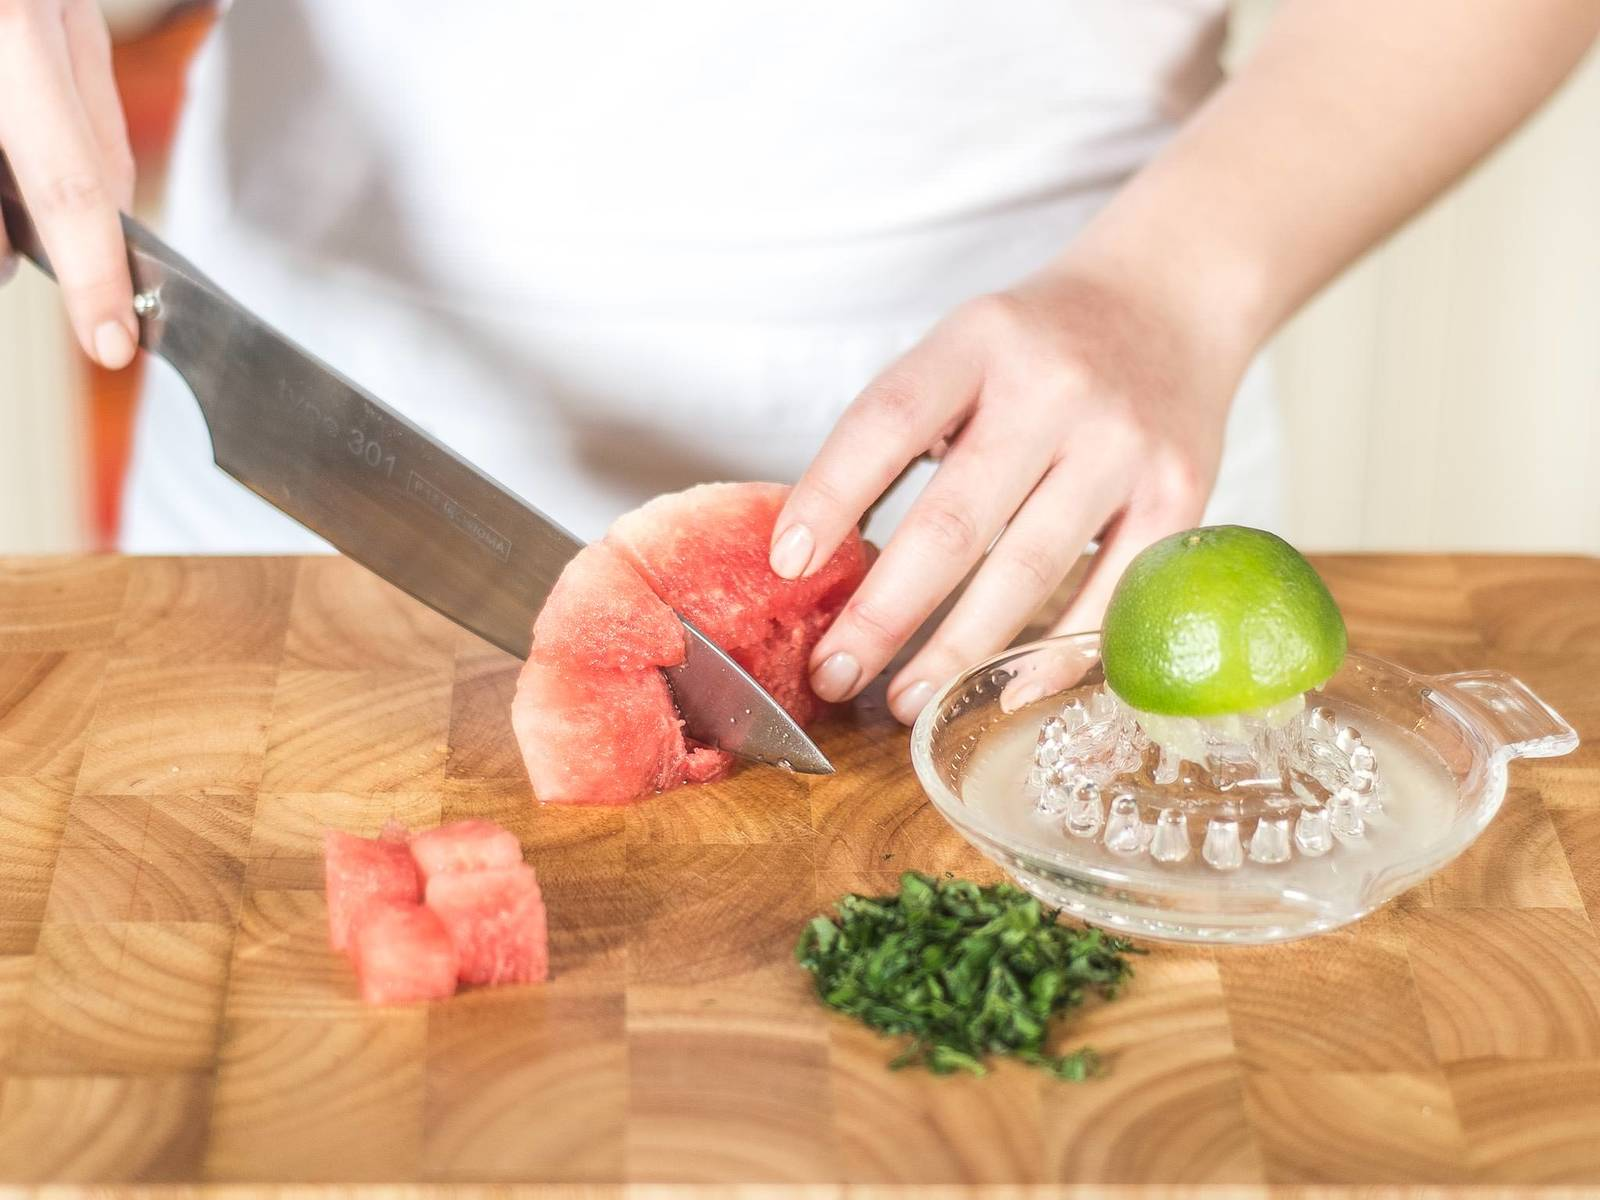 Juice the lime. Slice mint leaves into fine strips. Cut watermelon into bite-sized pieces.